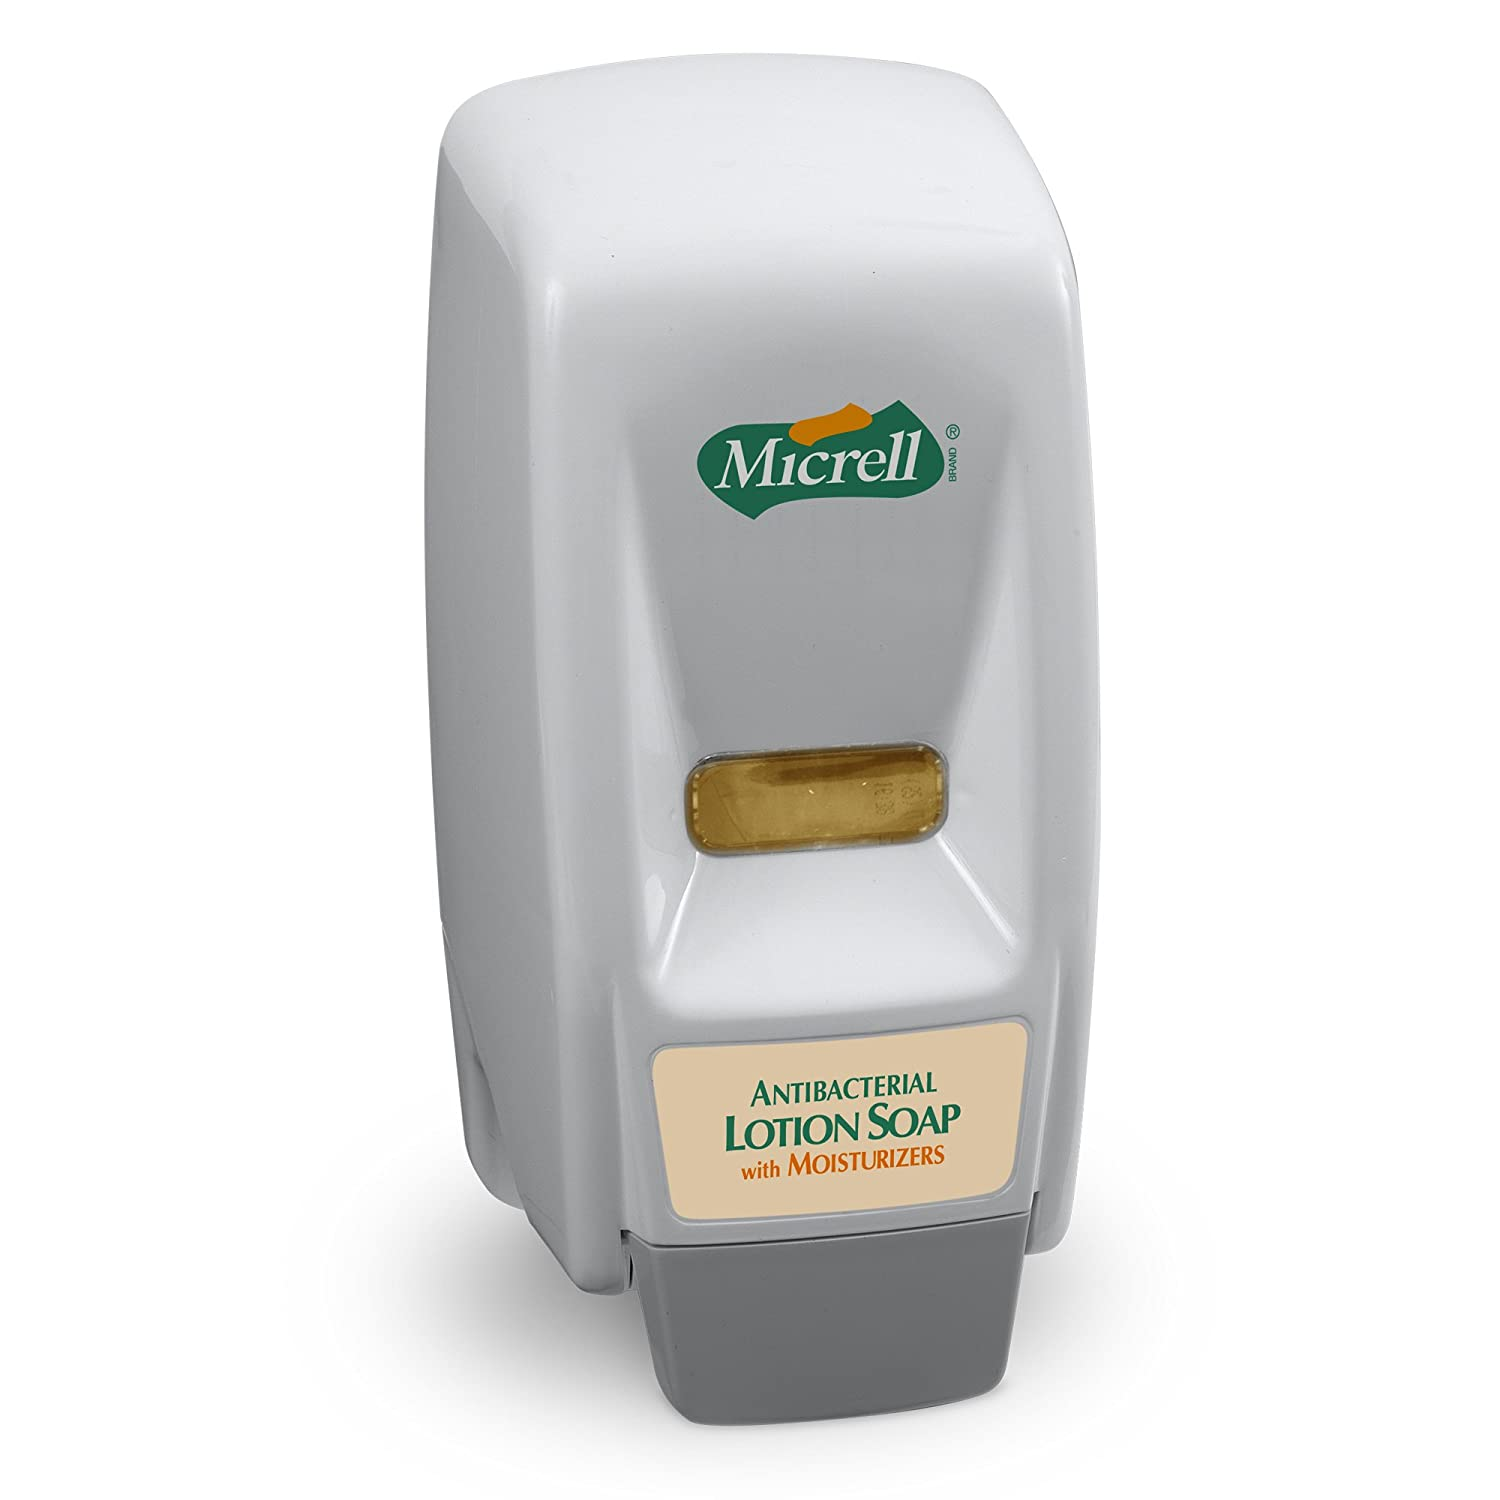 Micrell 9721-12 800 Series Bag In Box Dispenser for 9757 Refills Only, 12-Pack GOJO / Purell CA